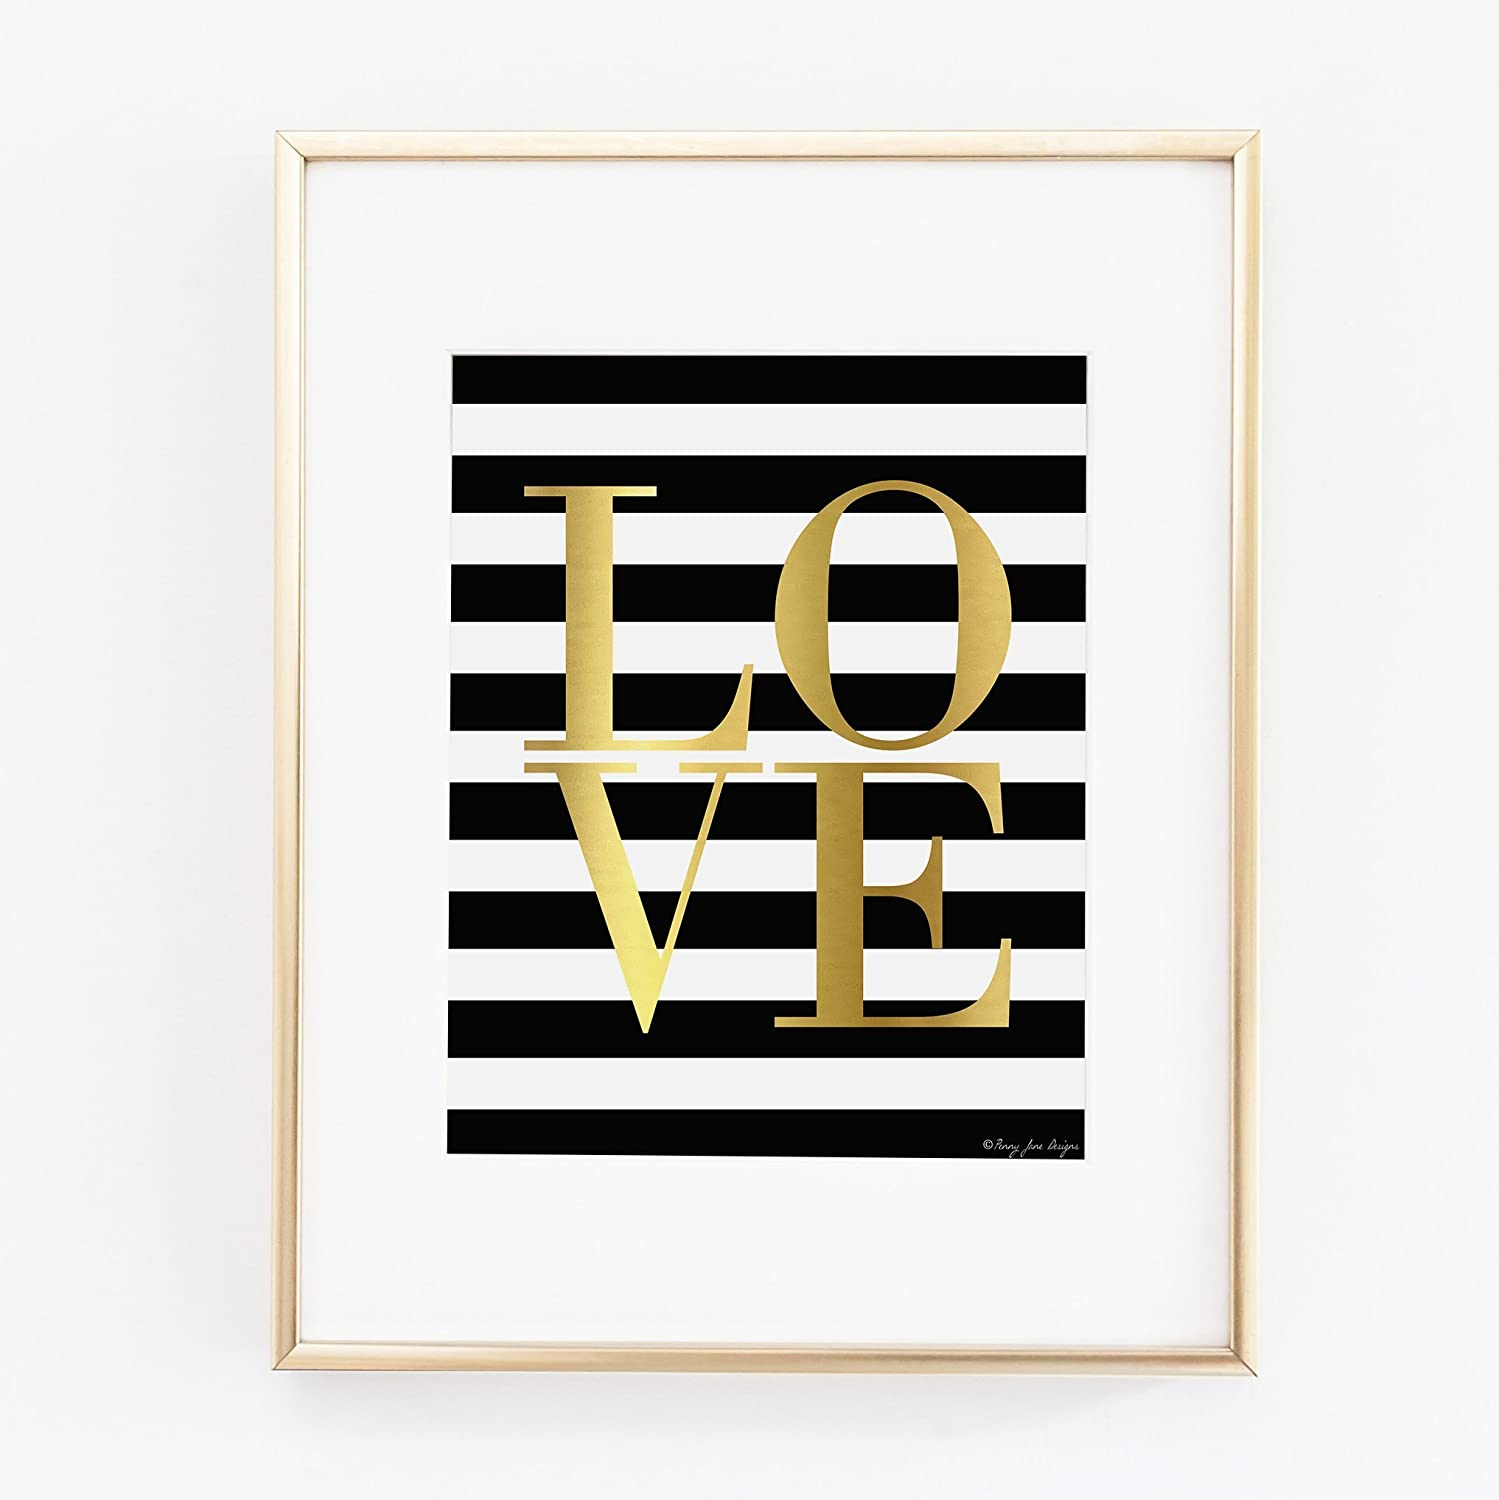 Amazon Com Gold Love With Black And White Striped Bg Art Office Decor Home Wall Print Handmade